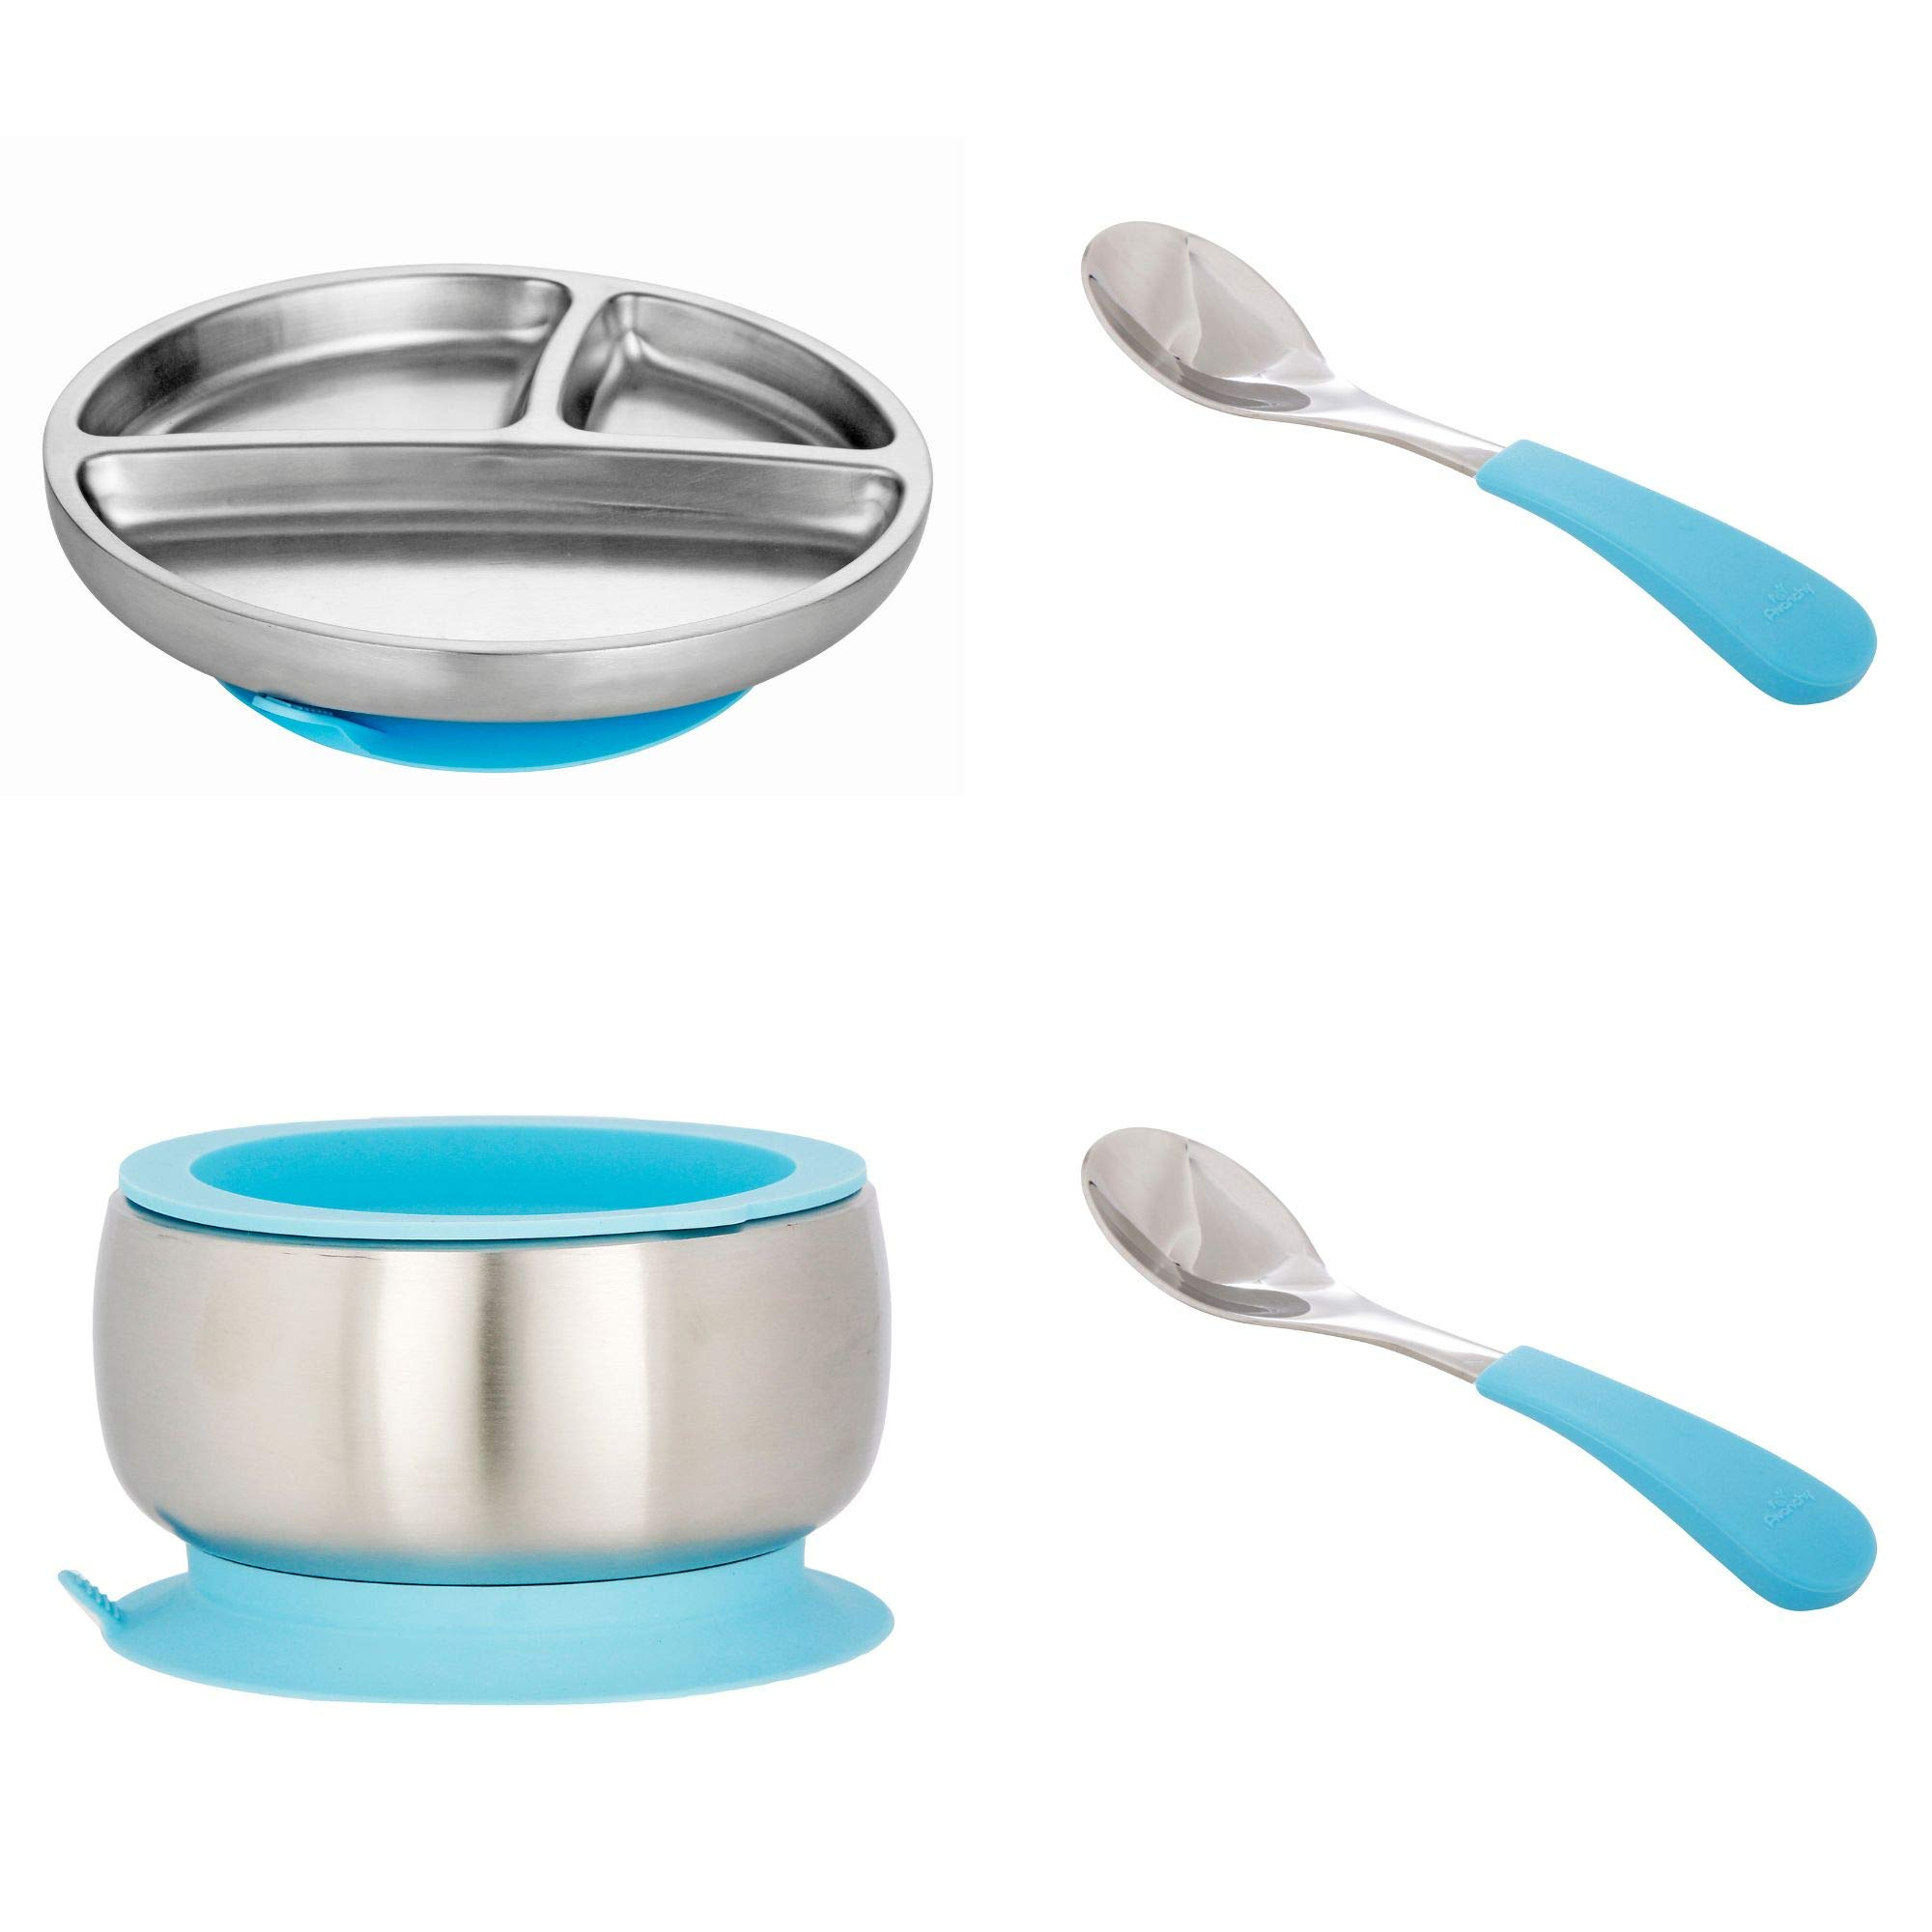 Avanchy Stainless Steel Toddler Feeding Divided Plate, Bowl & Spoons + Silicone Suction, Infant, Kid or Child Plates. 18/8, BPA Free, BPS Free, Lead Free and Phthalate Free. (Blue Gift Set)